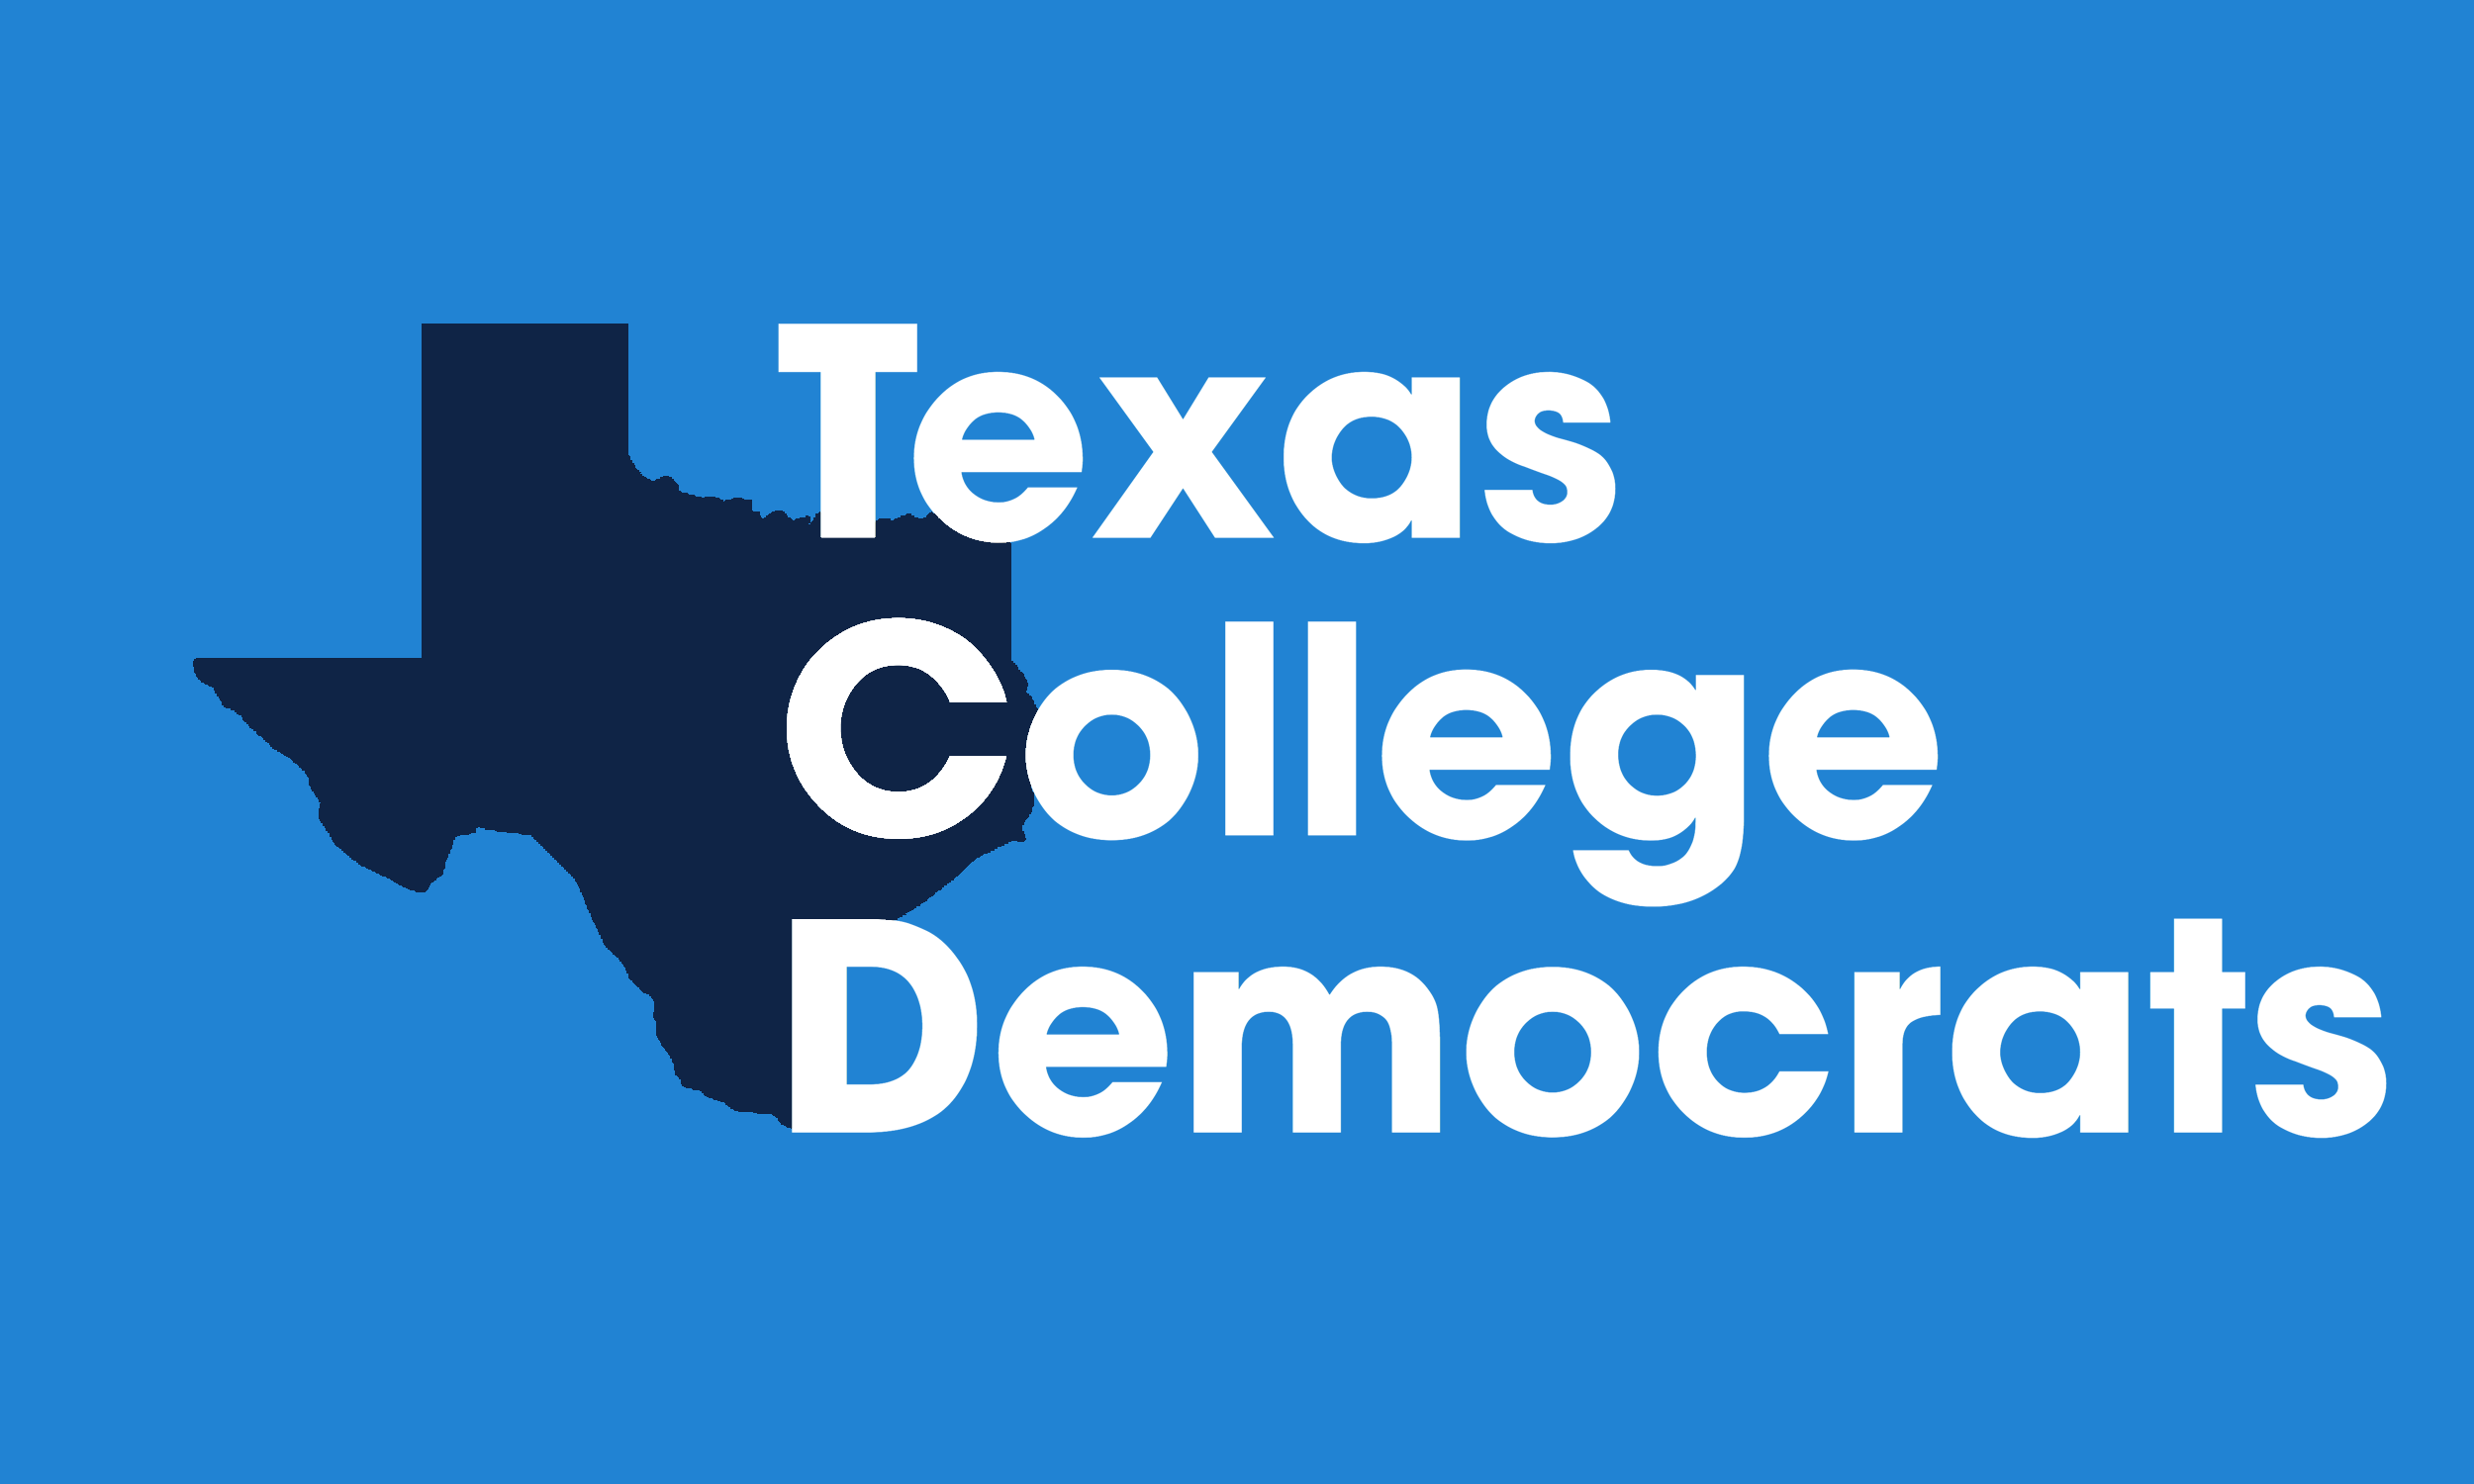 Texas College Democrats